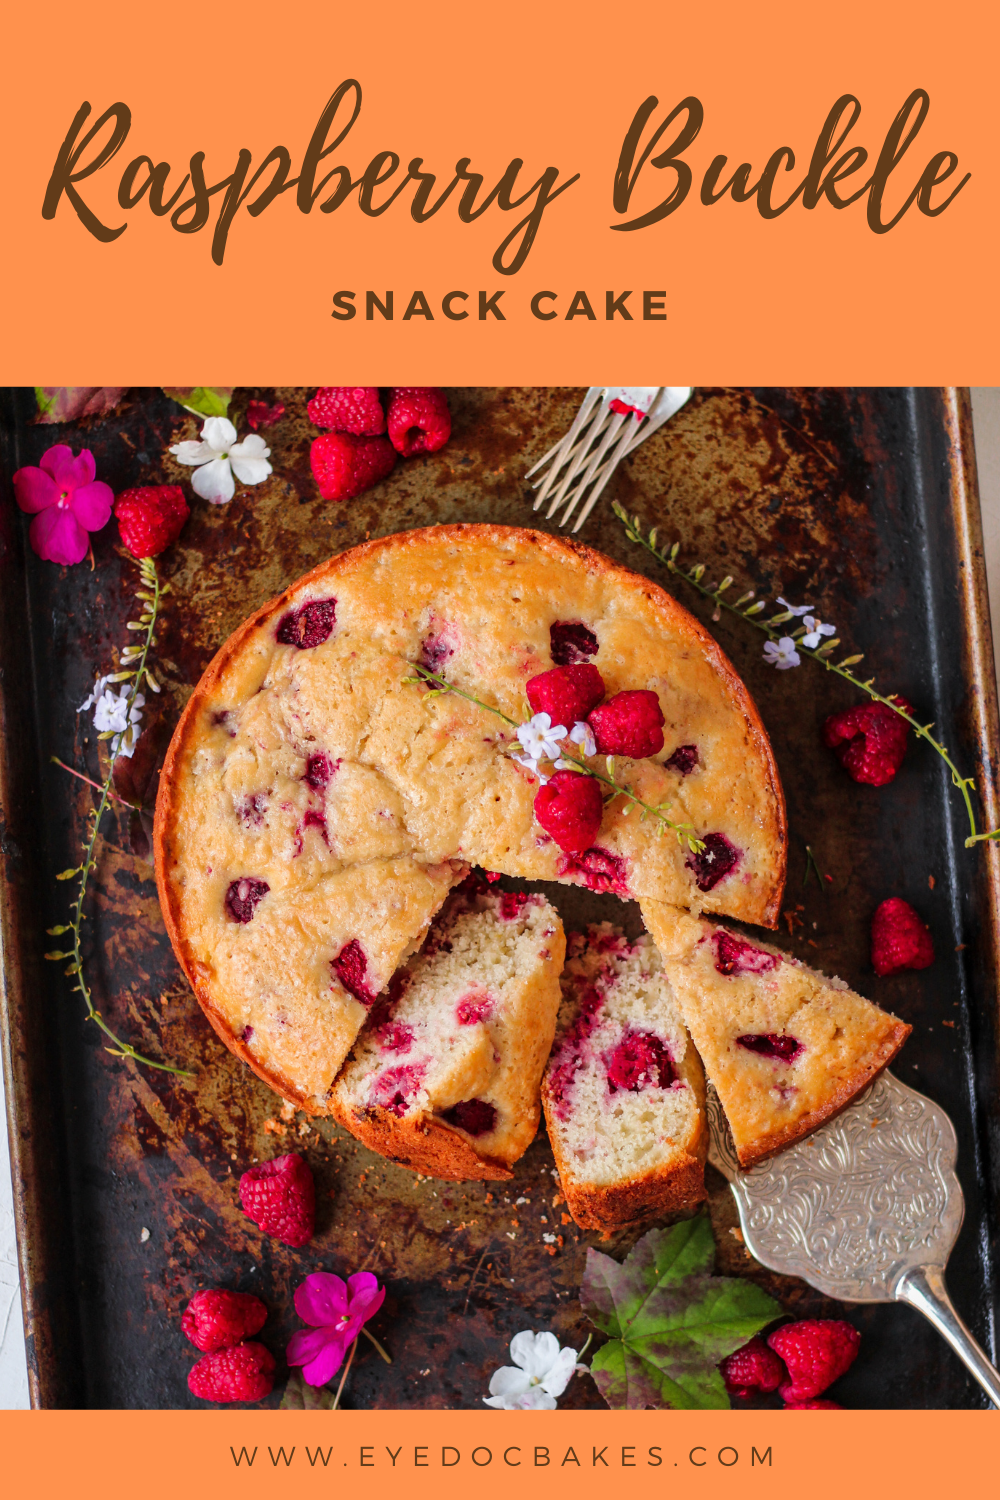 Soft and moist crumb one layer raspberry buckle snack cake